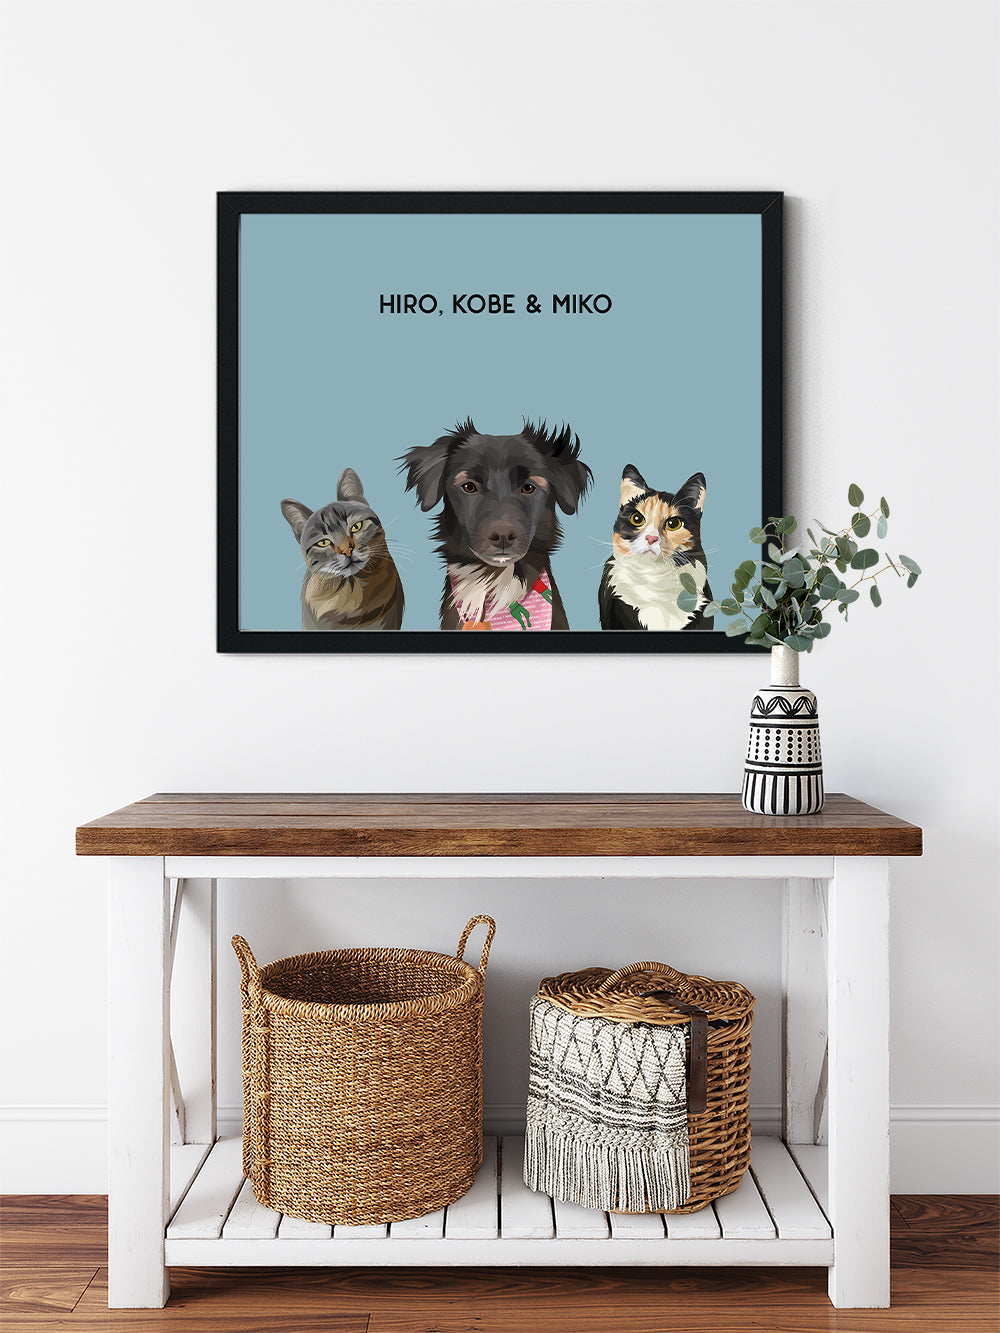 Trio custom framed pet portrait of a cat, dog and cat on ocean blue background with black frame. Personalized name of cat, dog and cat in black font.